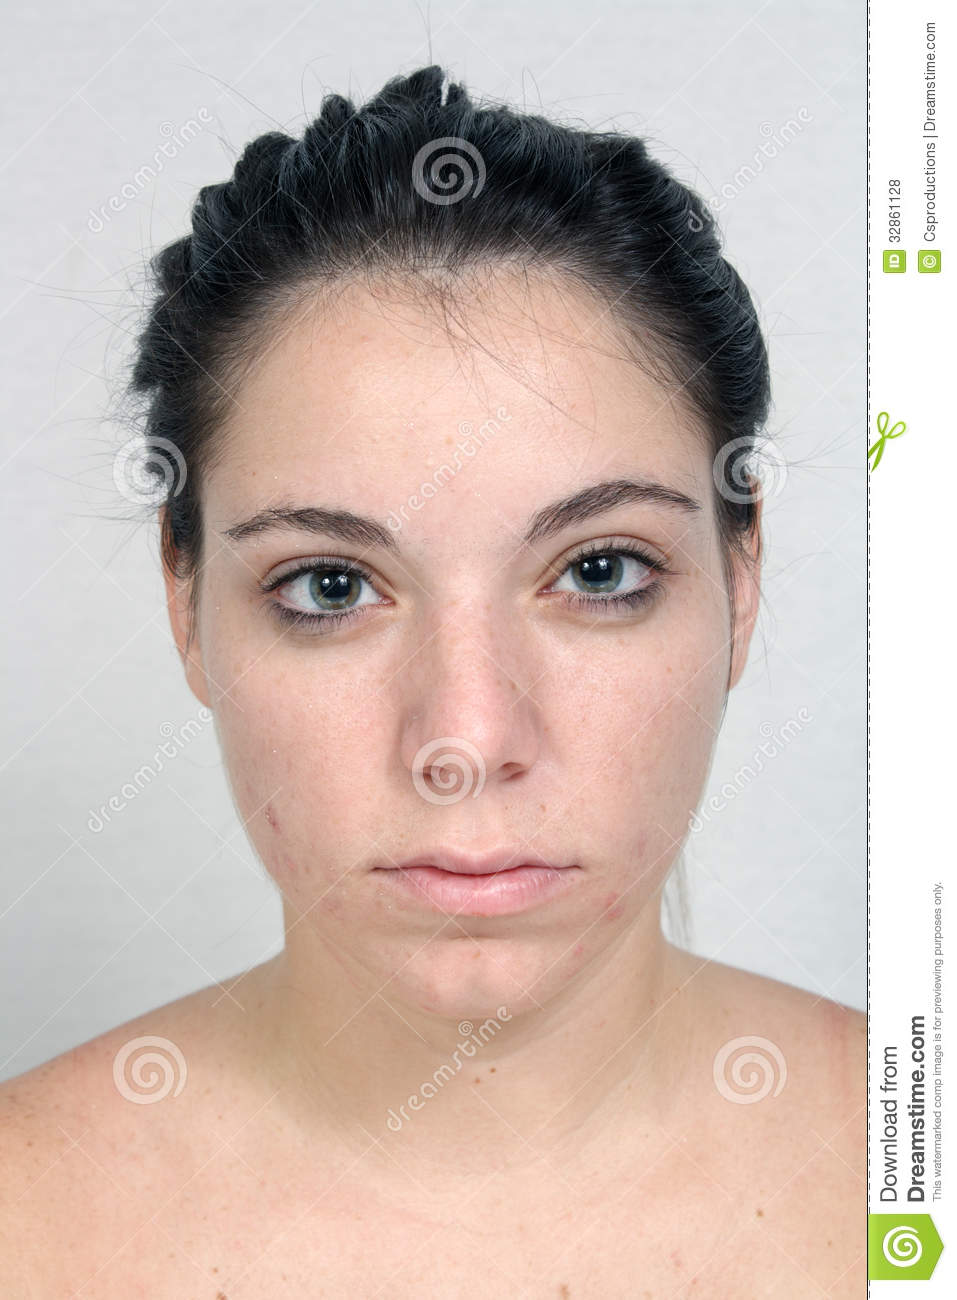 acne in young adult women